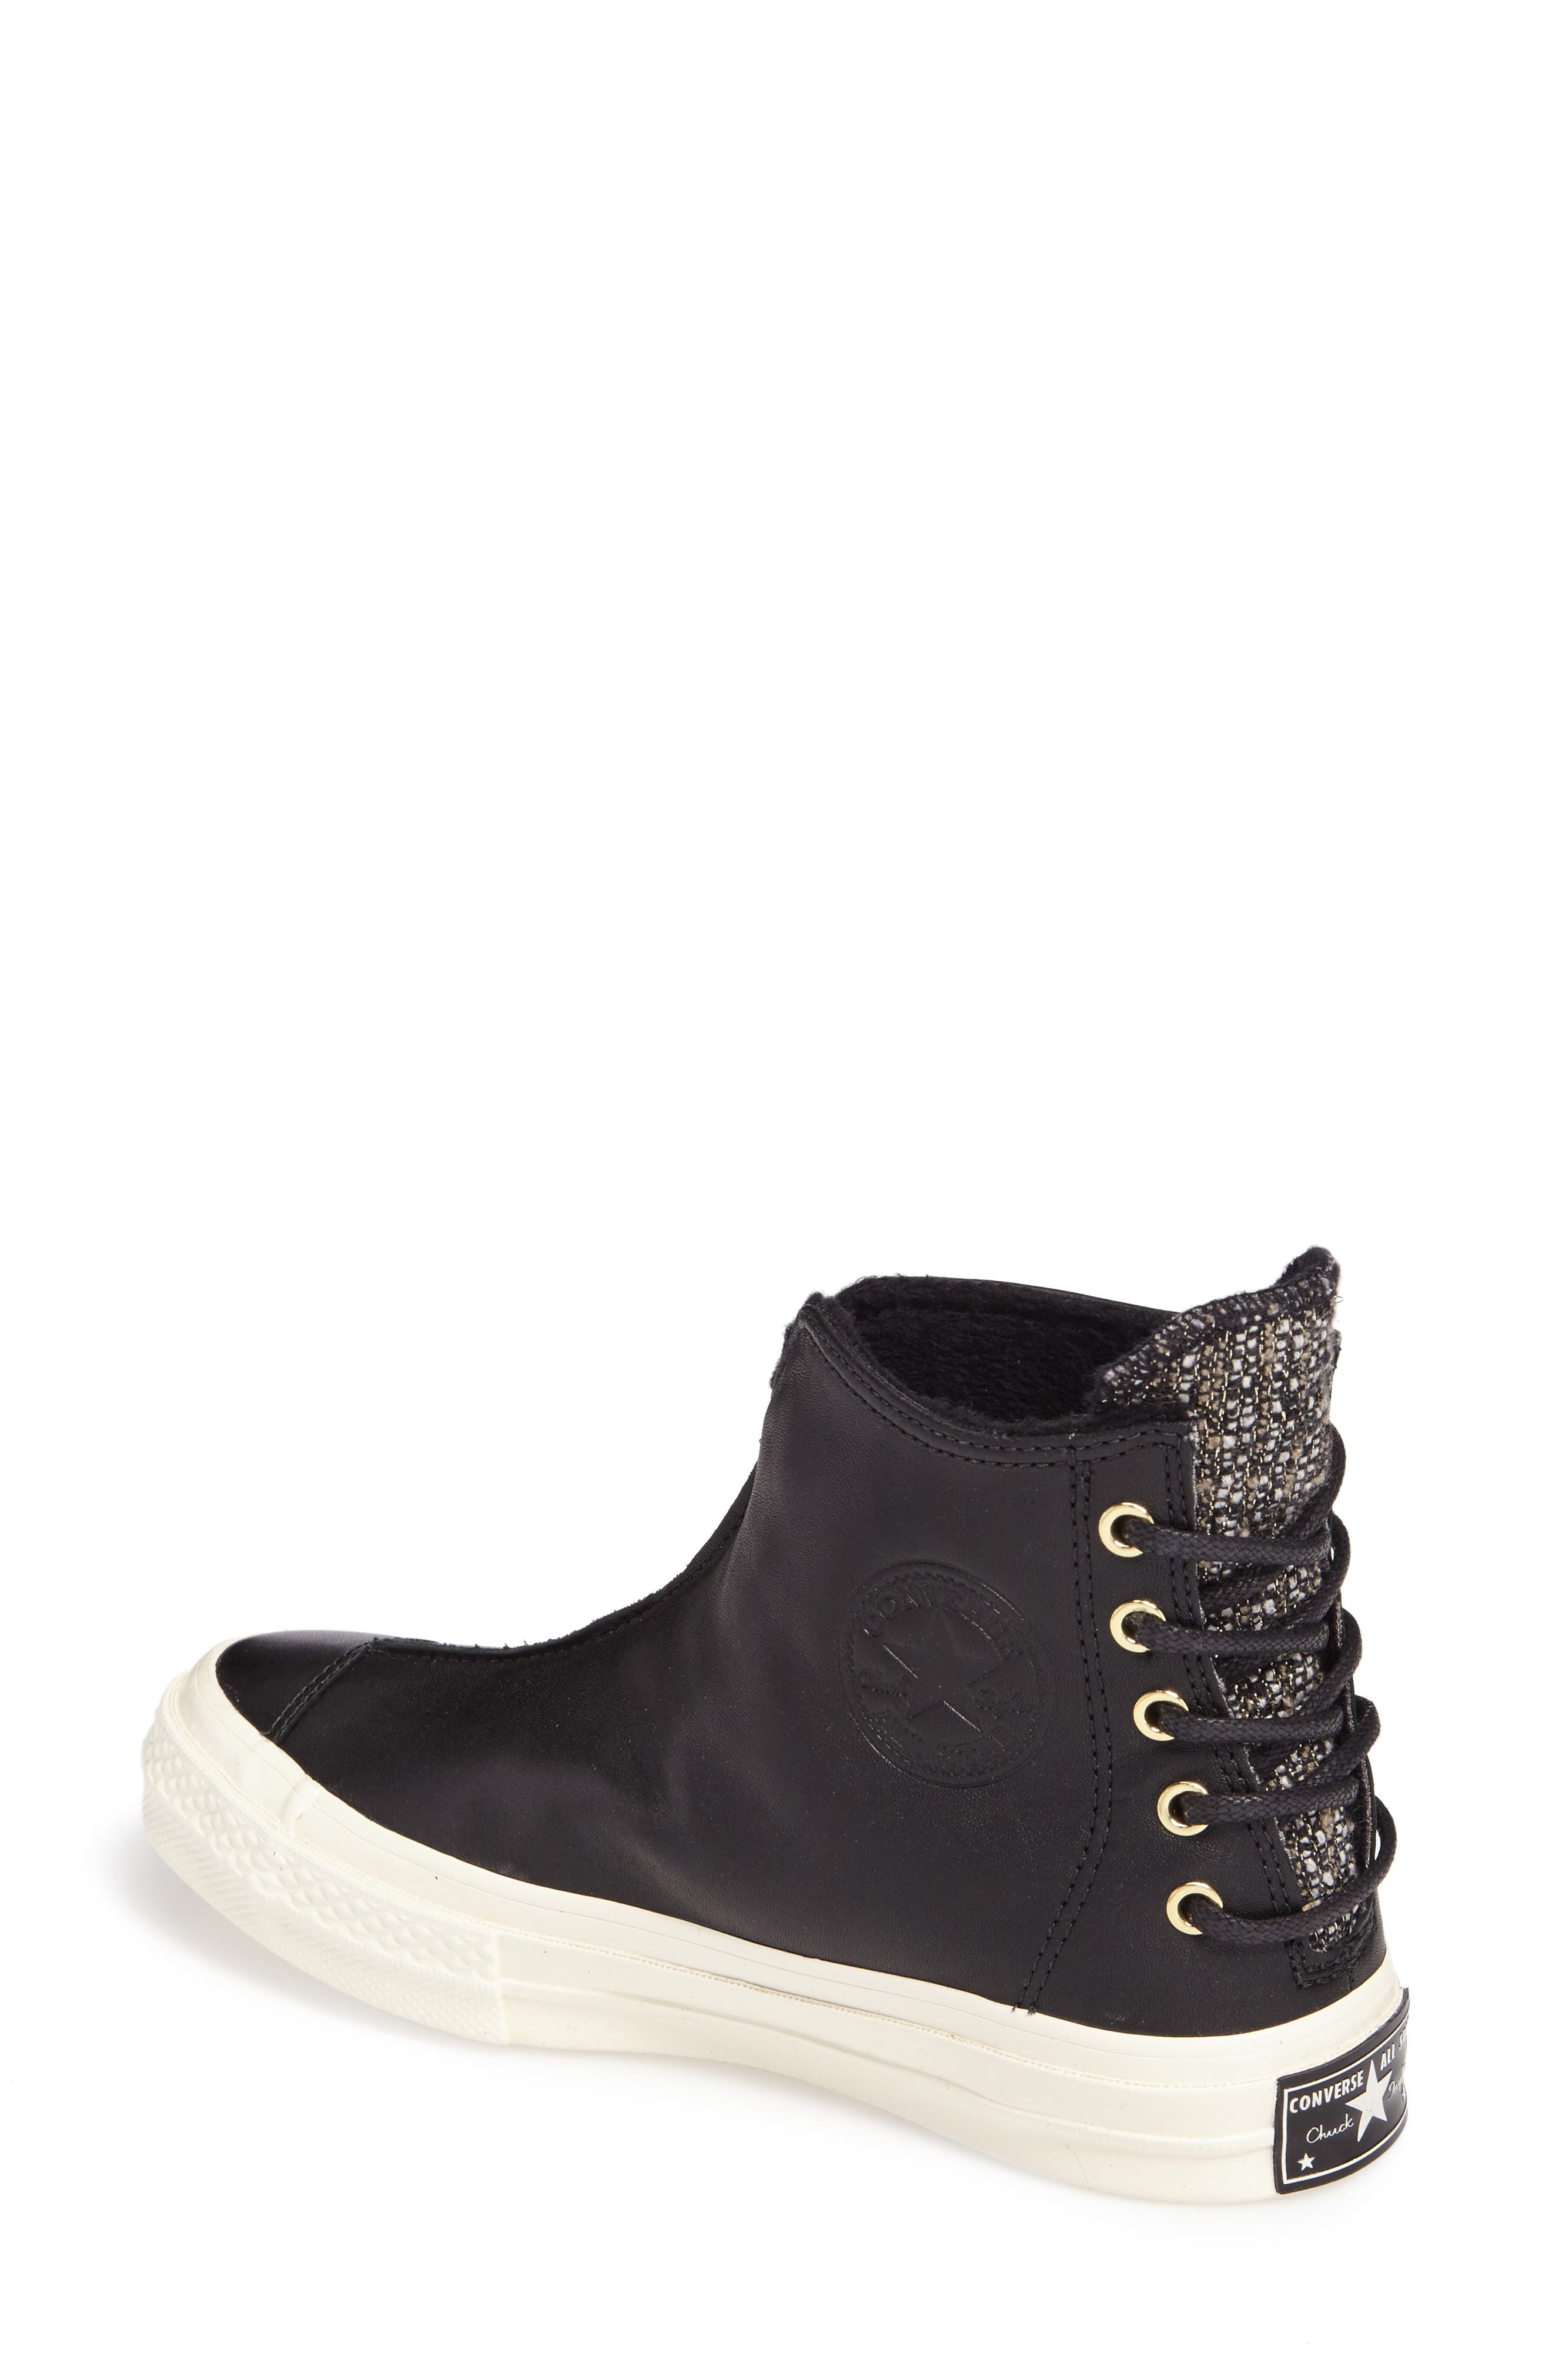 Chuck Taylor<sup>®</sup> All Star<sup>®</sup> Chuck 70 Punk Sneaker Boot,                             Alternate thumbnail 2, color,                             001